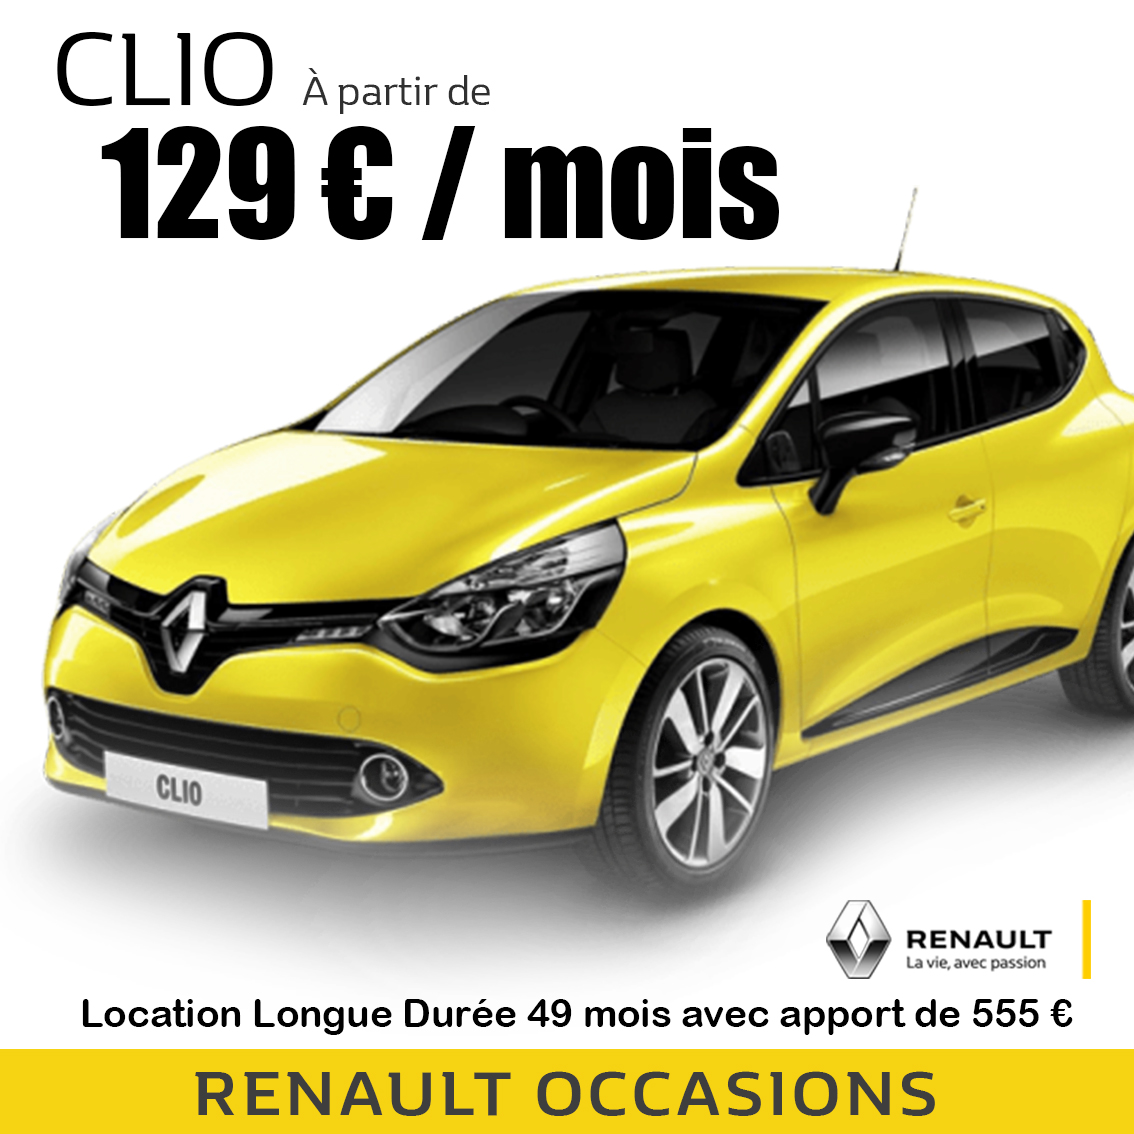 renault clio occasion chambray les tours renault tours. Black Bedroom Furniture Sets. Home Design Ideas